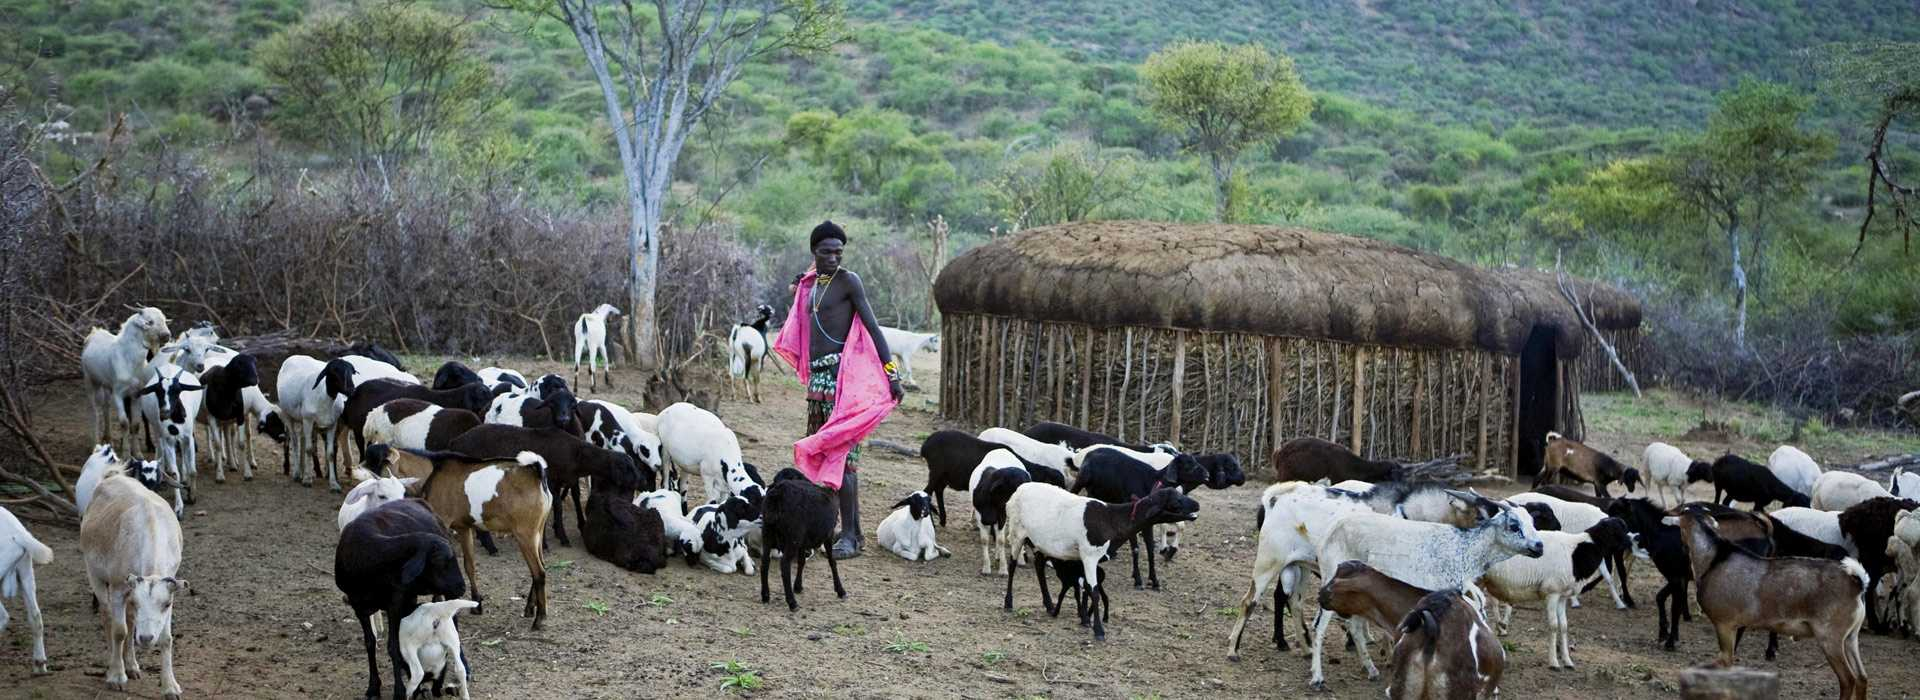 Warrior Herding Goats In Laikipia, Kenya